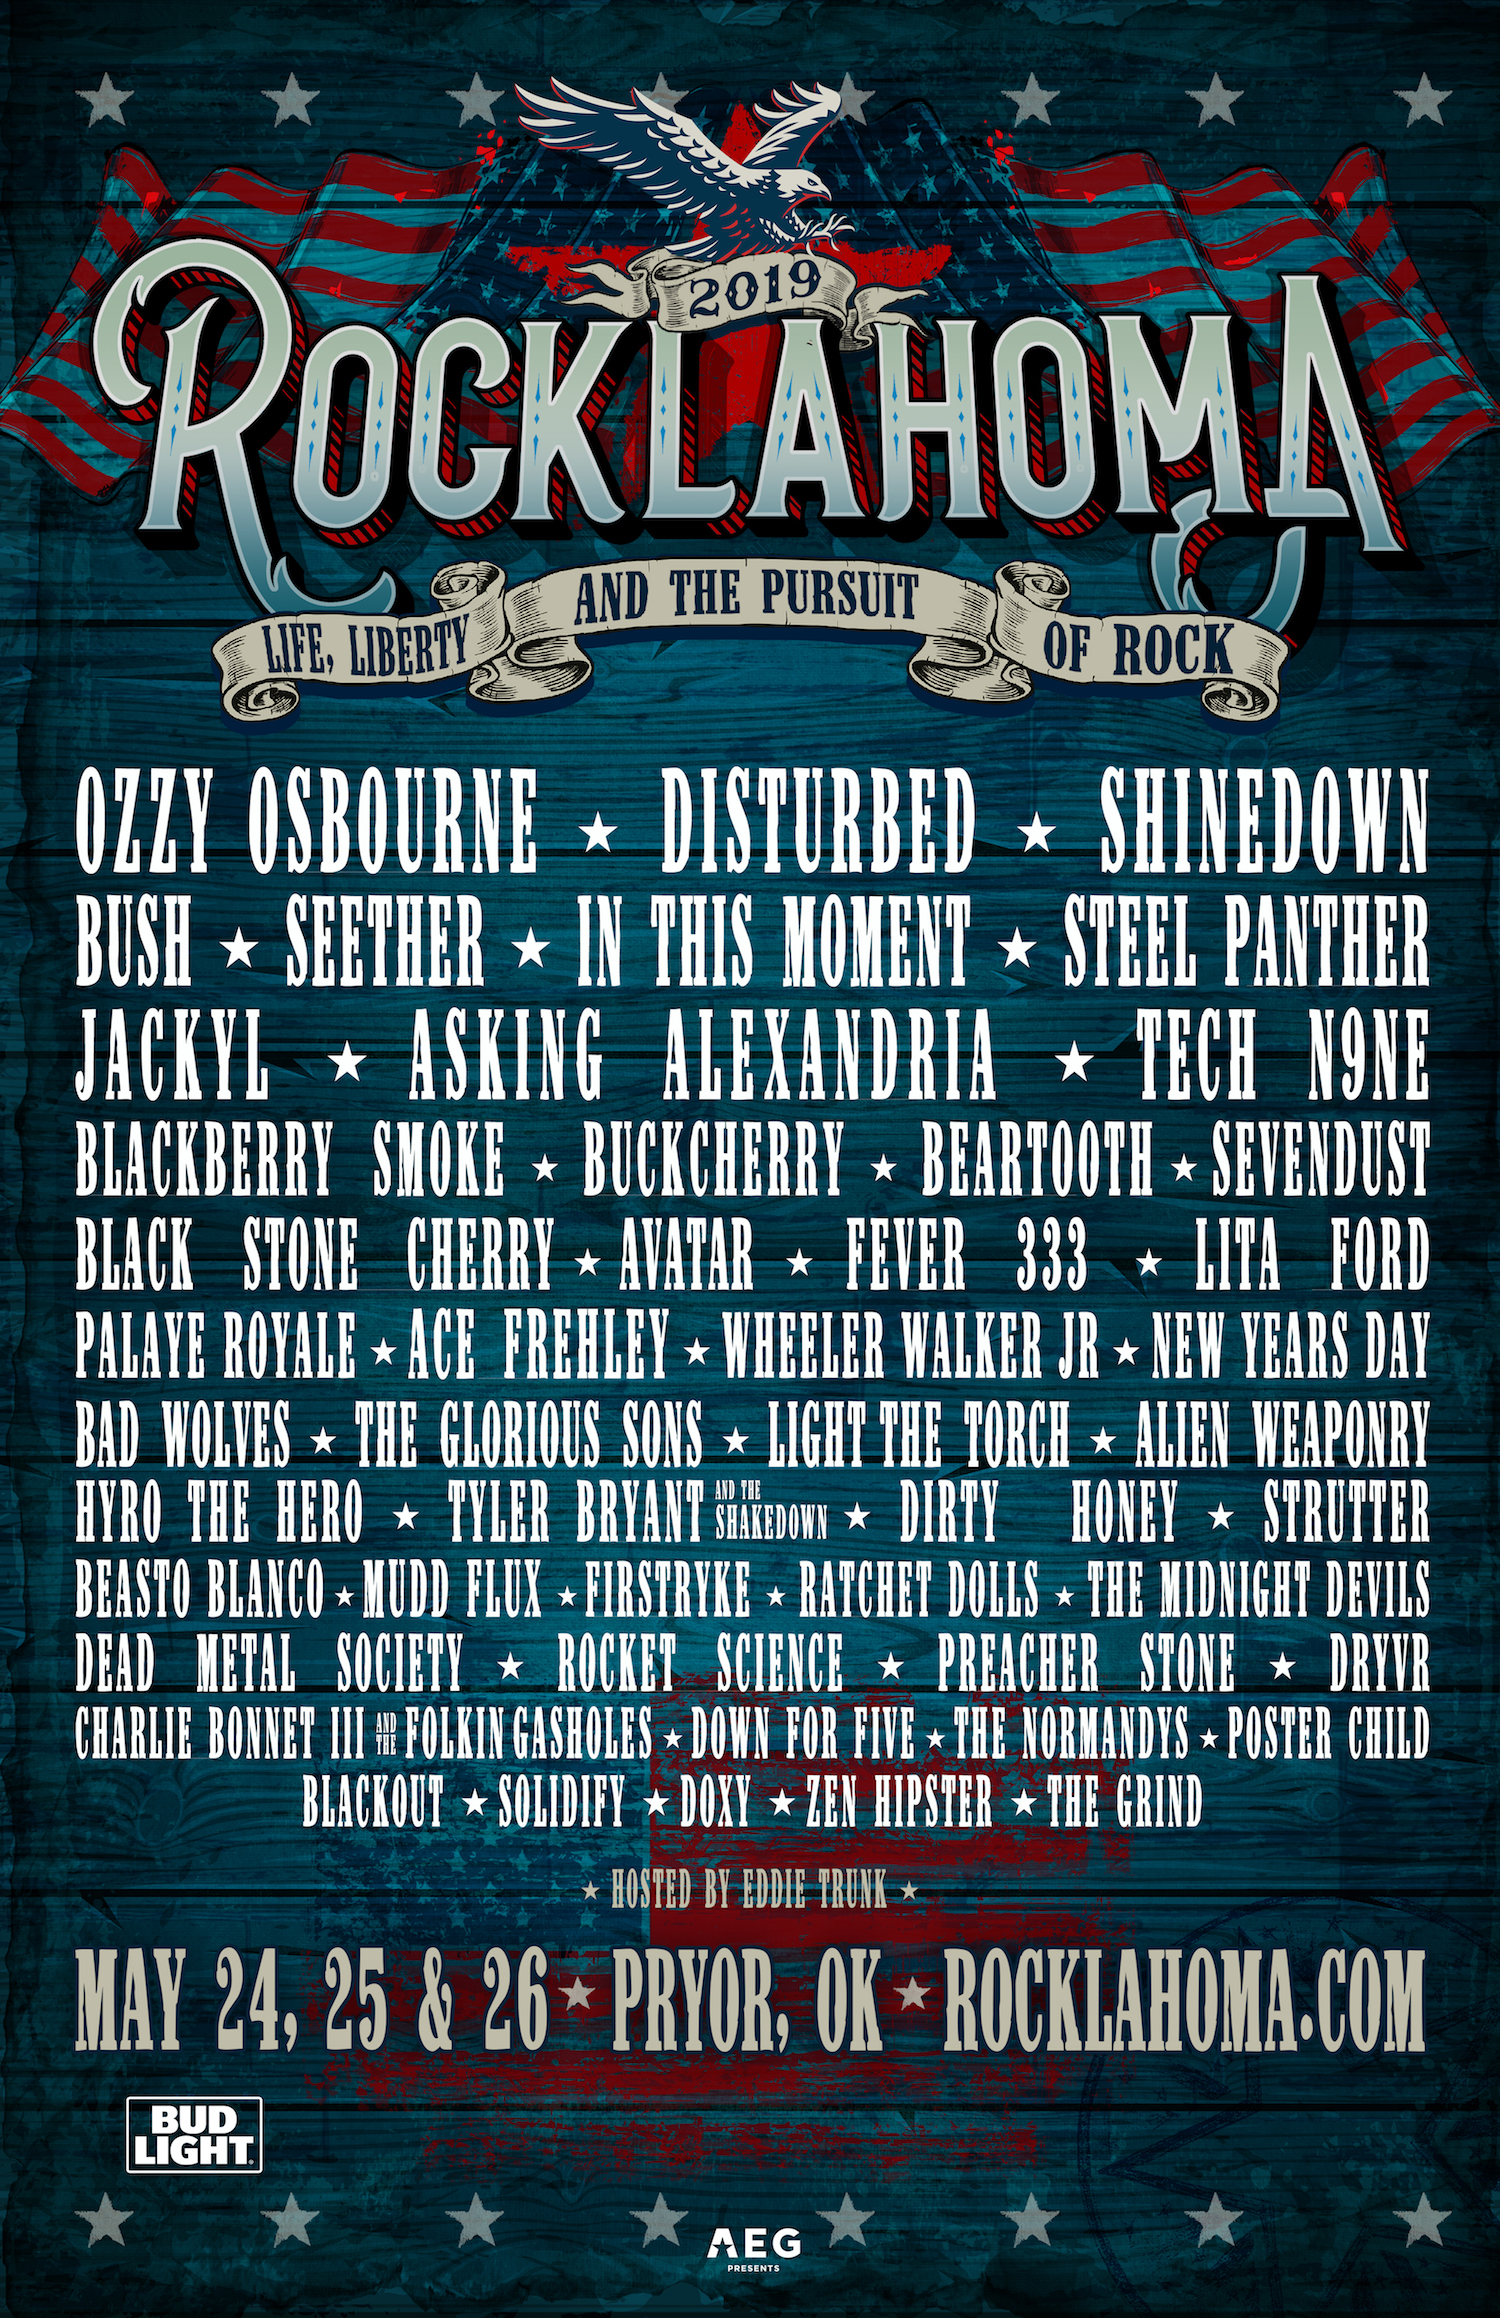 Rocklahoma 2019 Poster